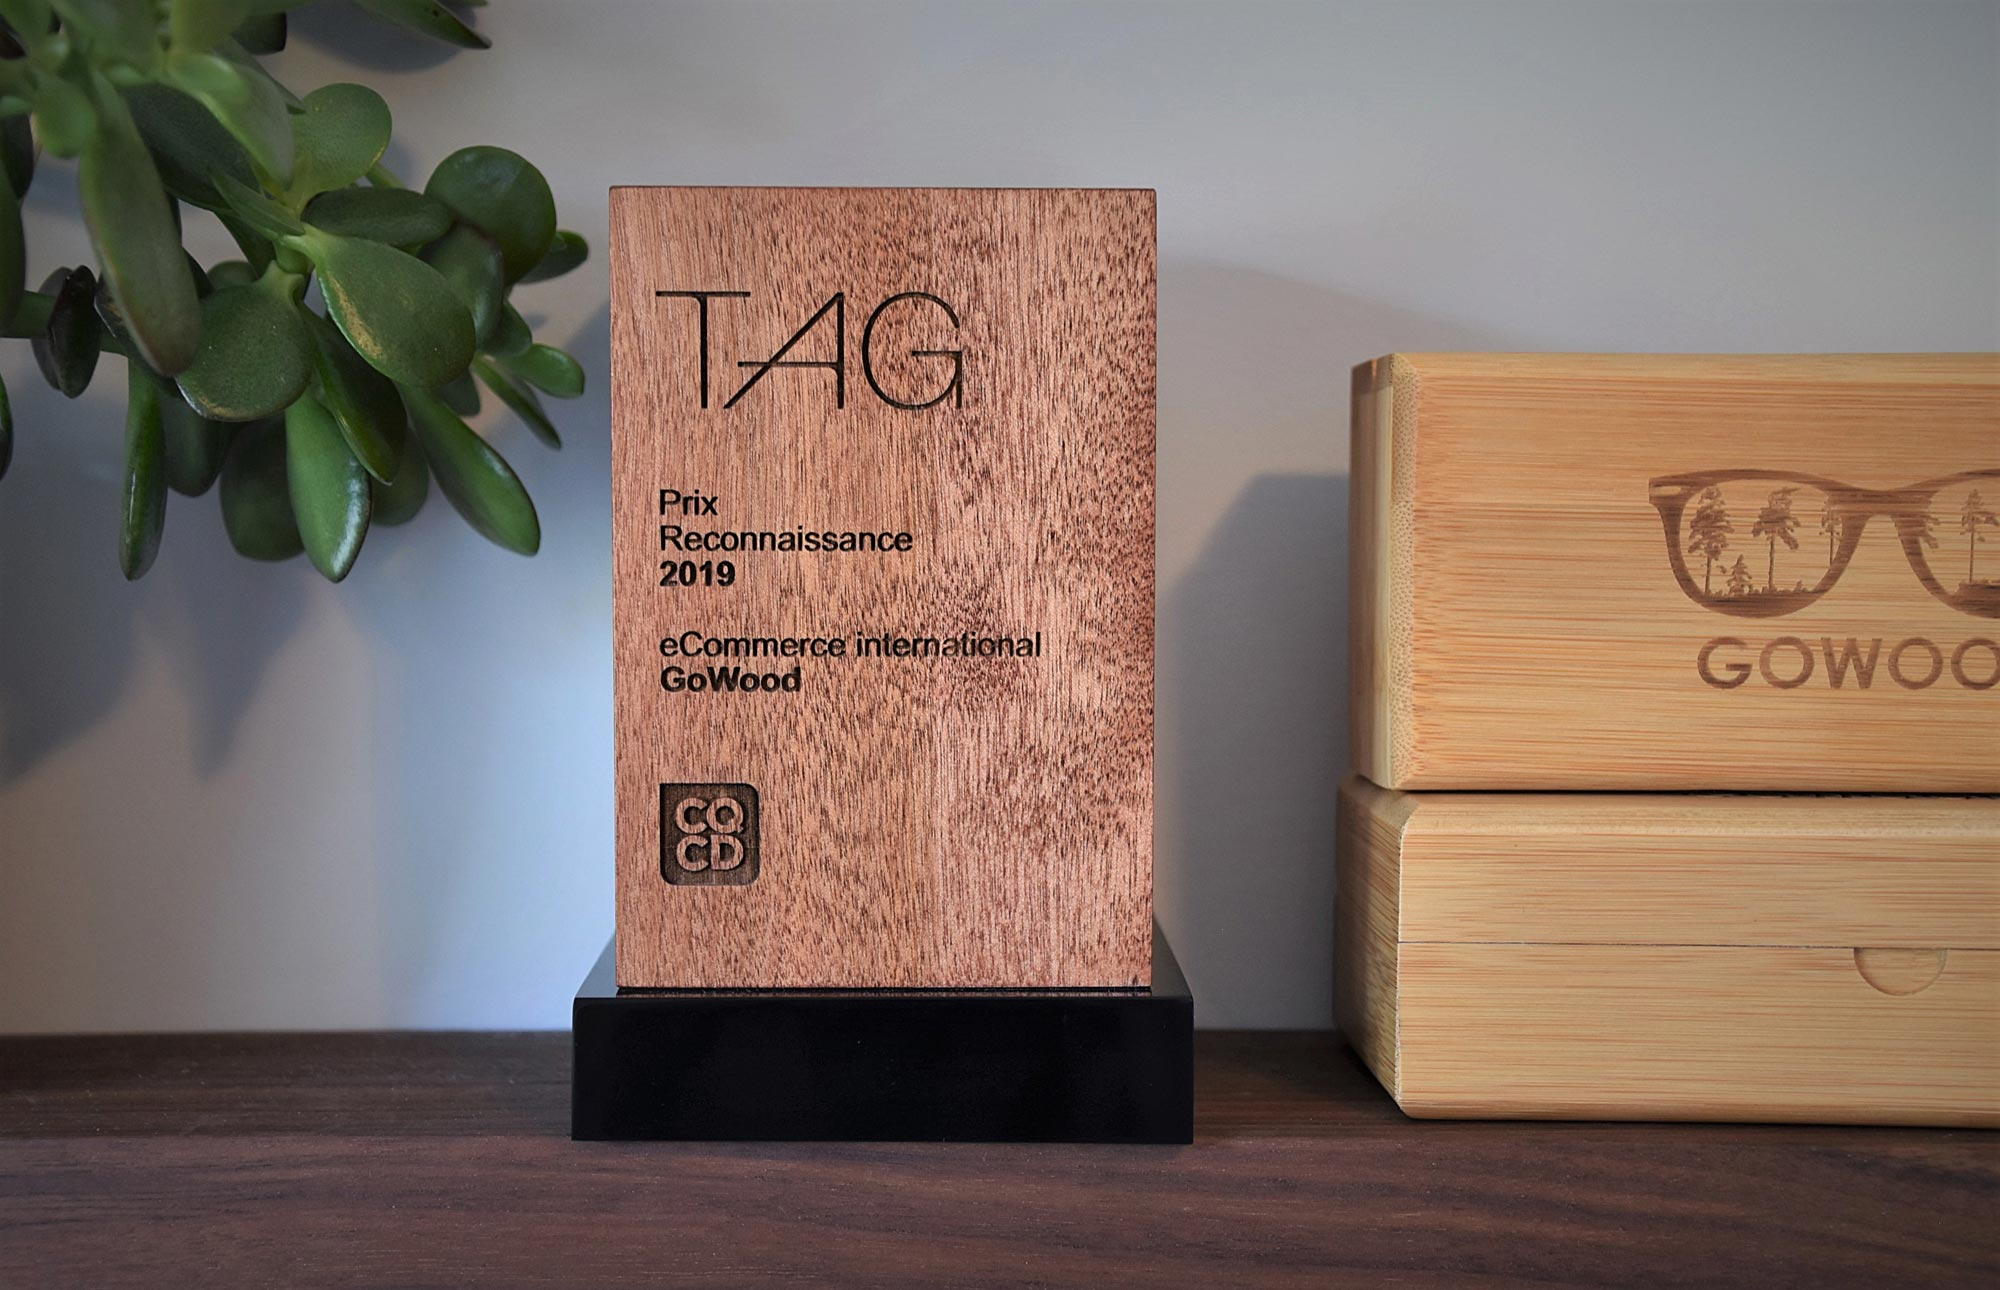 GoWood receives Recognition Award